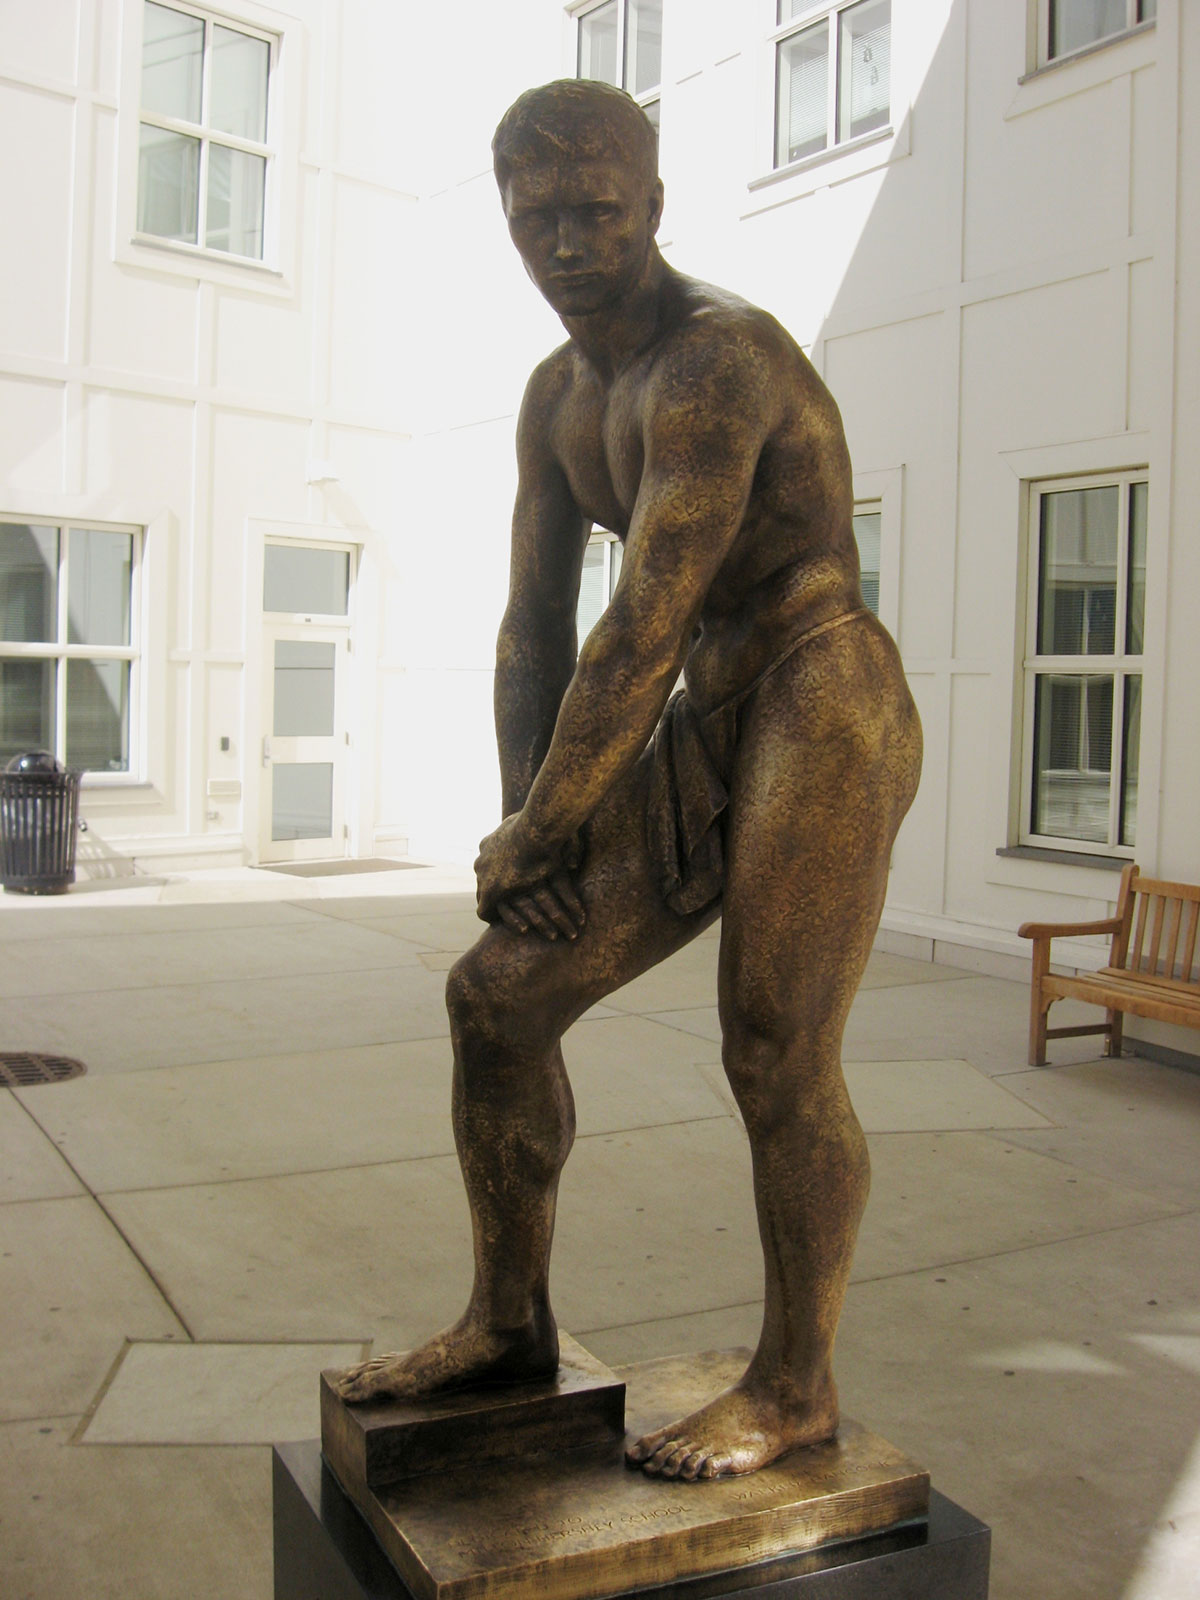 Original finish of bronze sculpture can be seen in crevices.